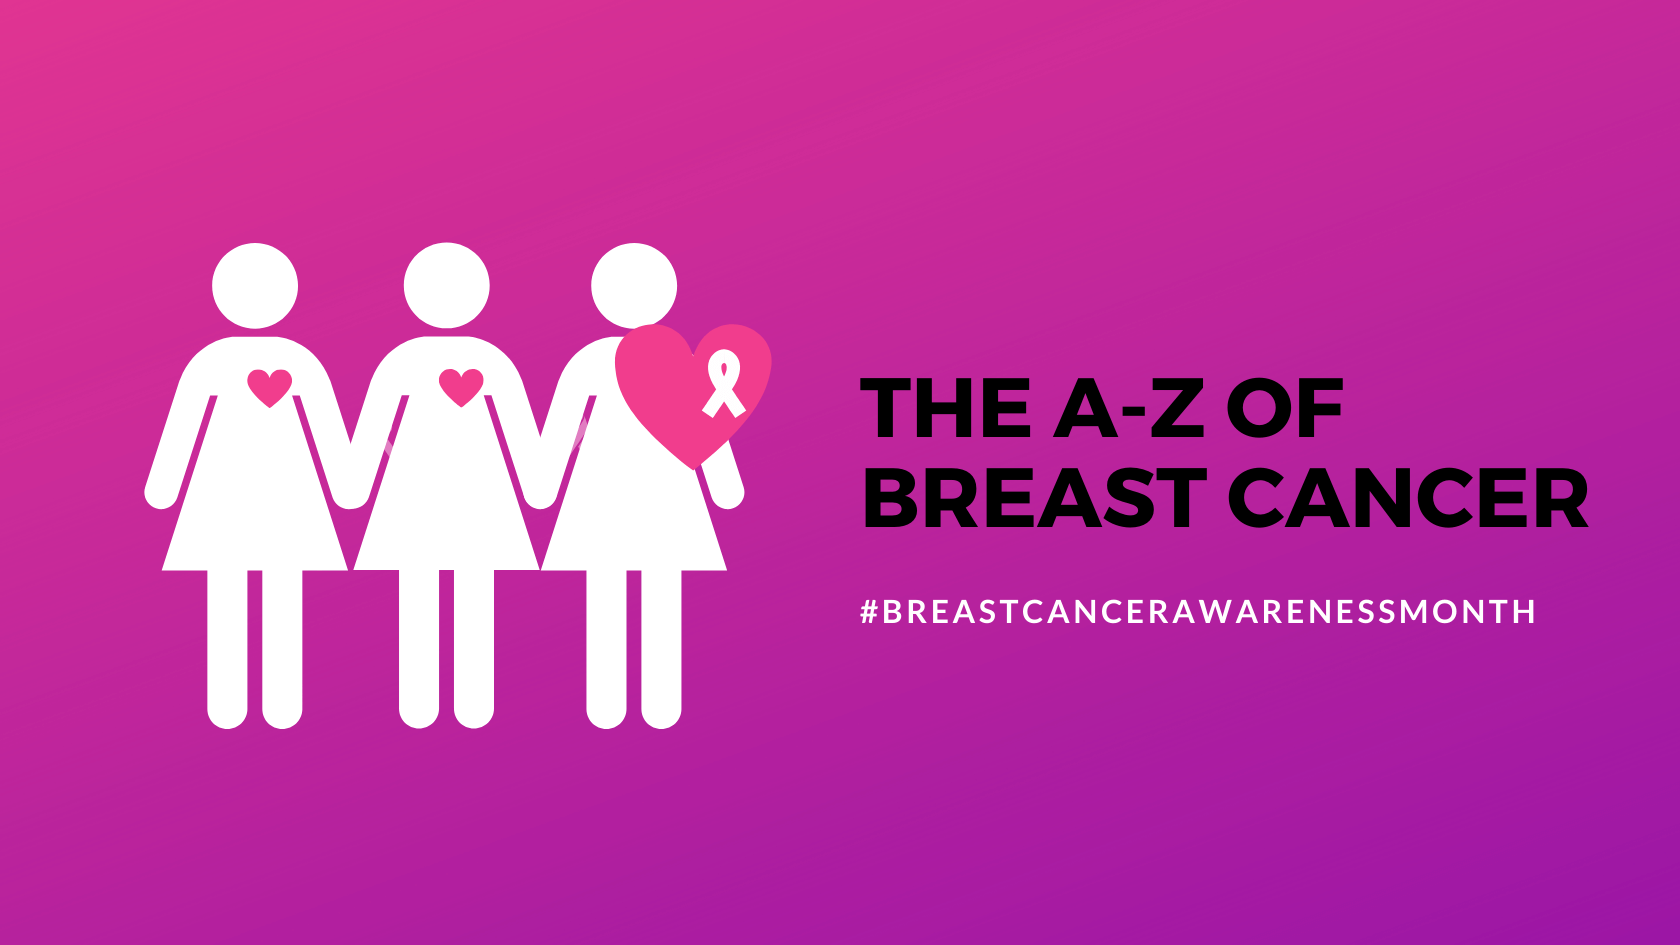 The A-Z of Breast Cancer